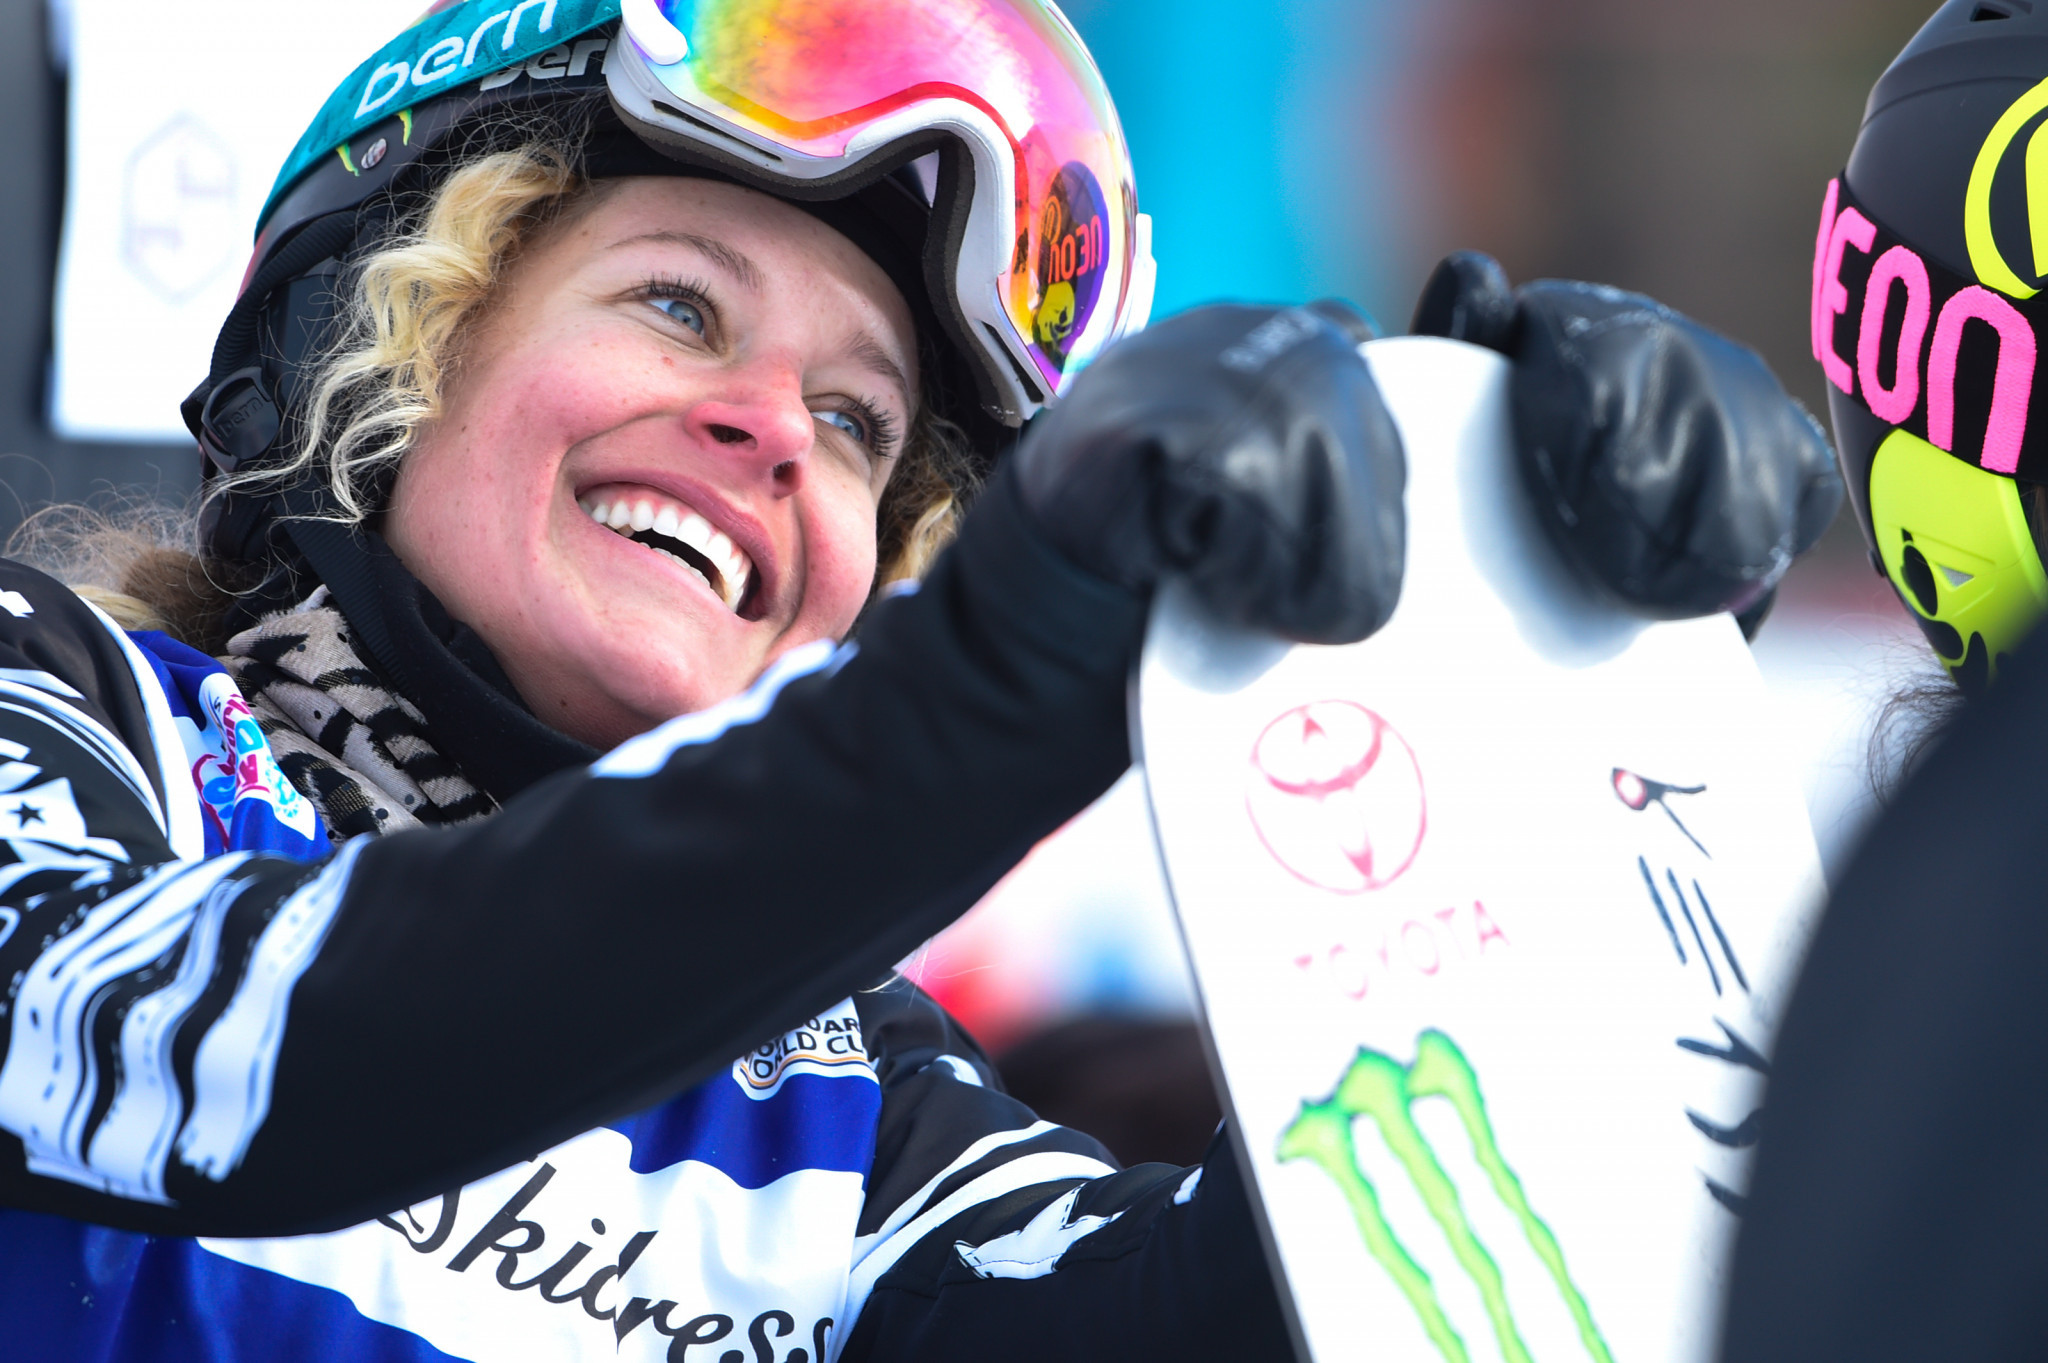 Jacobellis claims victory in Cervinia as Snowboard Cross World Cup season begins